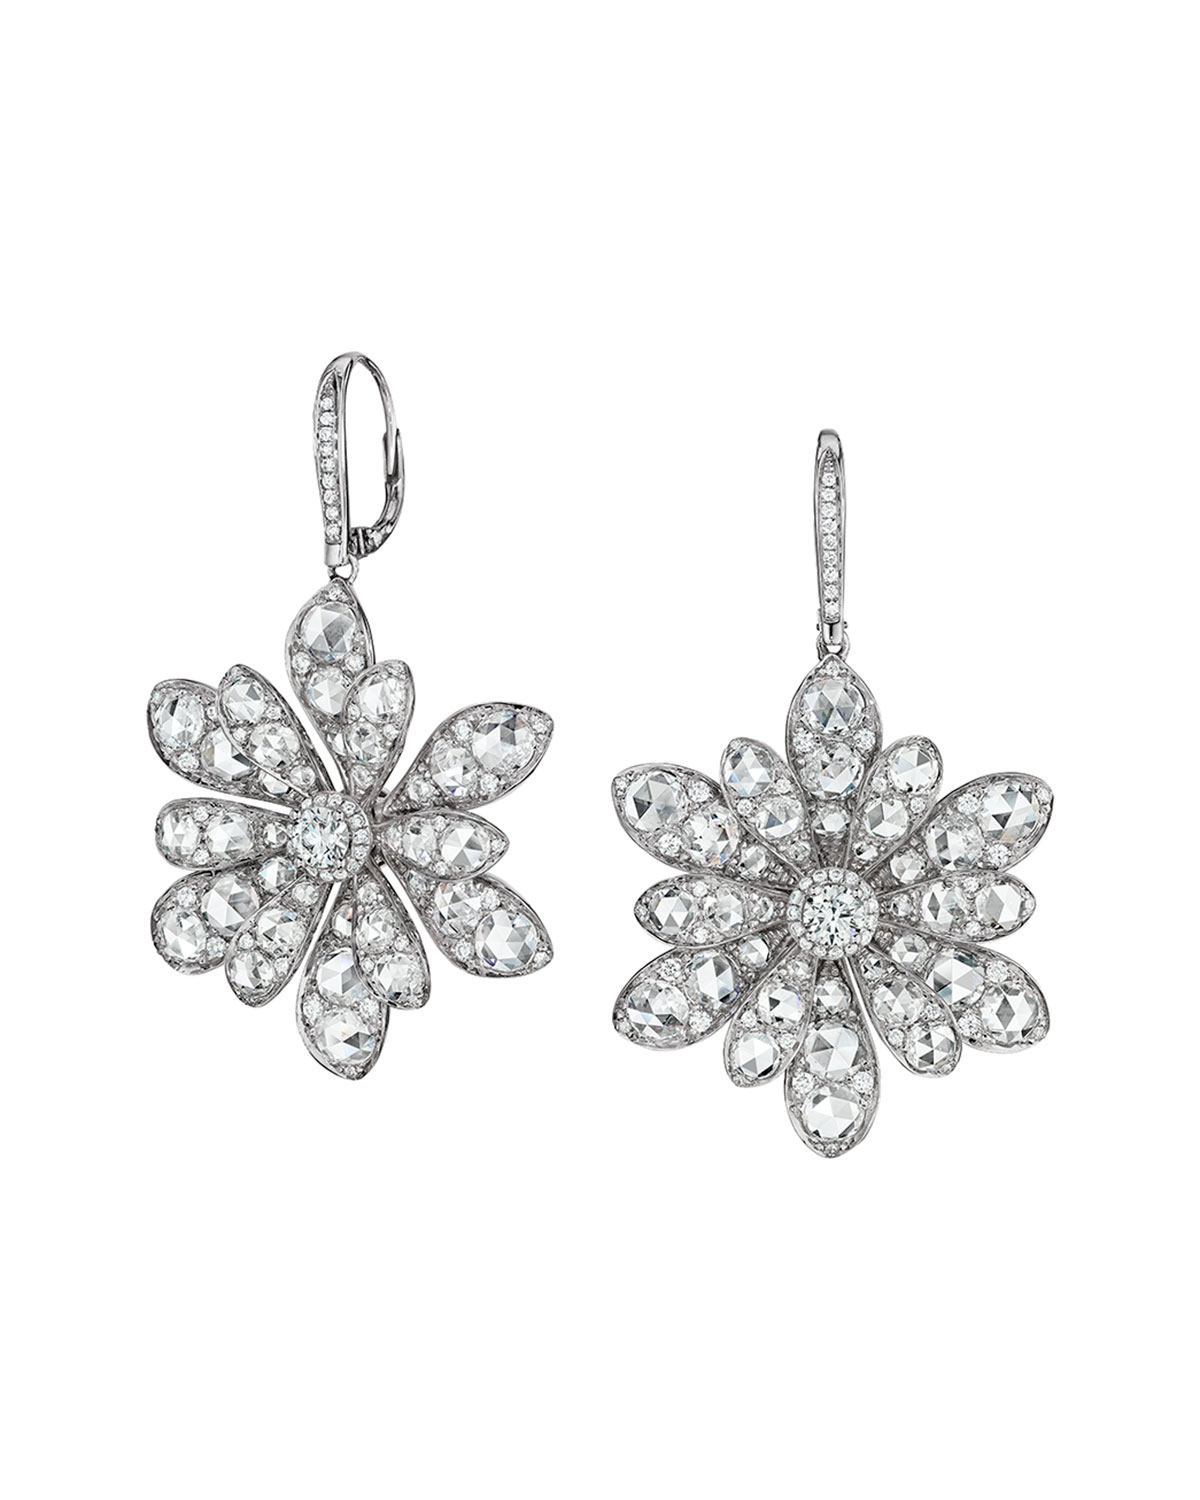 Maria Canale 18k White Gold Round and Rose-Cut Diamond